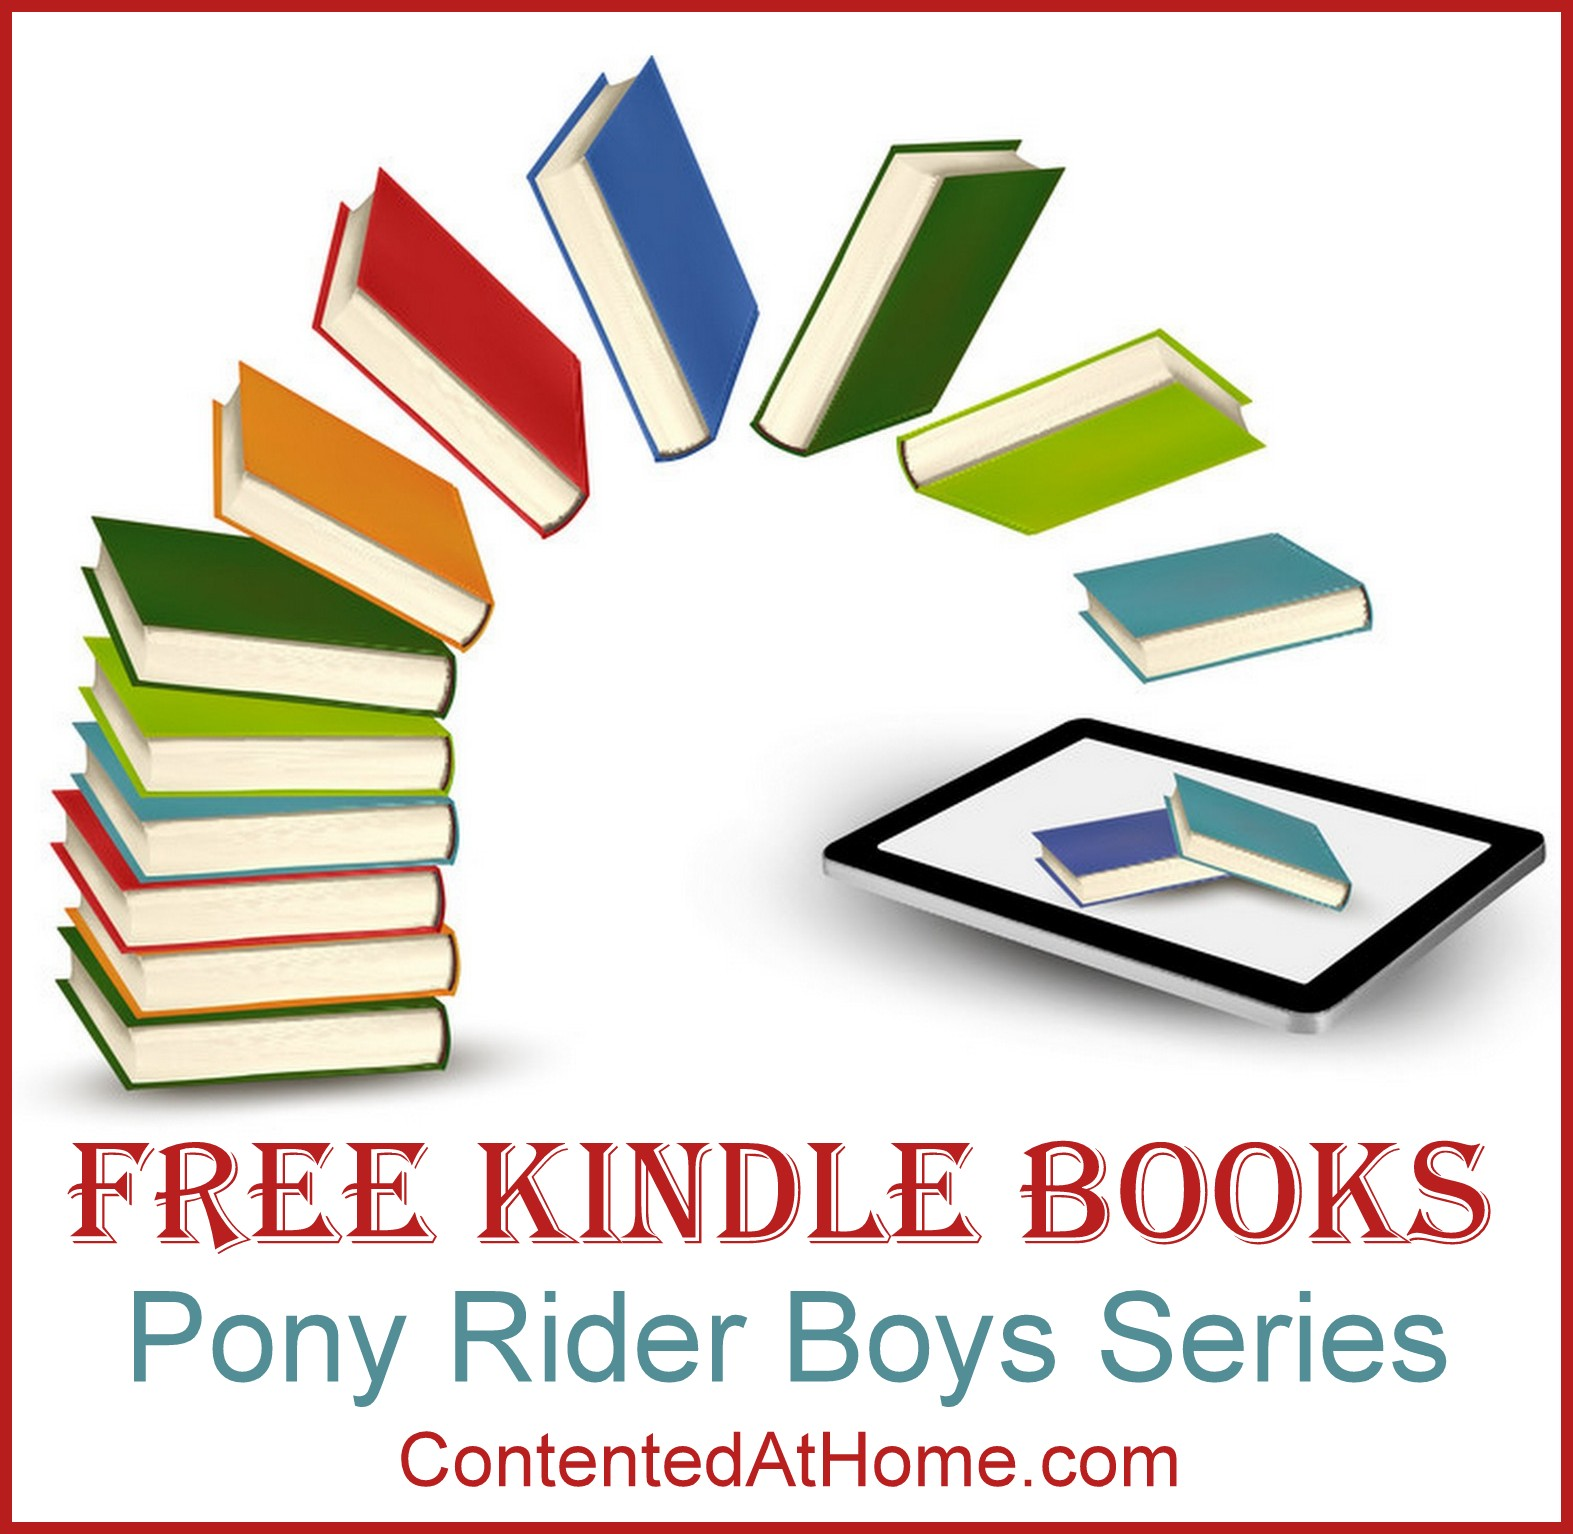 The Pony Rider Boys in MontanaOr, the Mystery of the Old Custer Trail